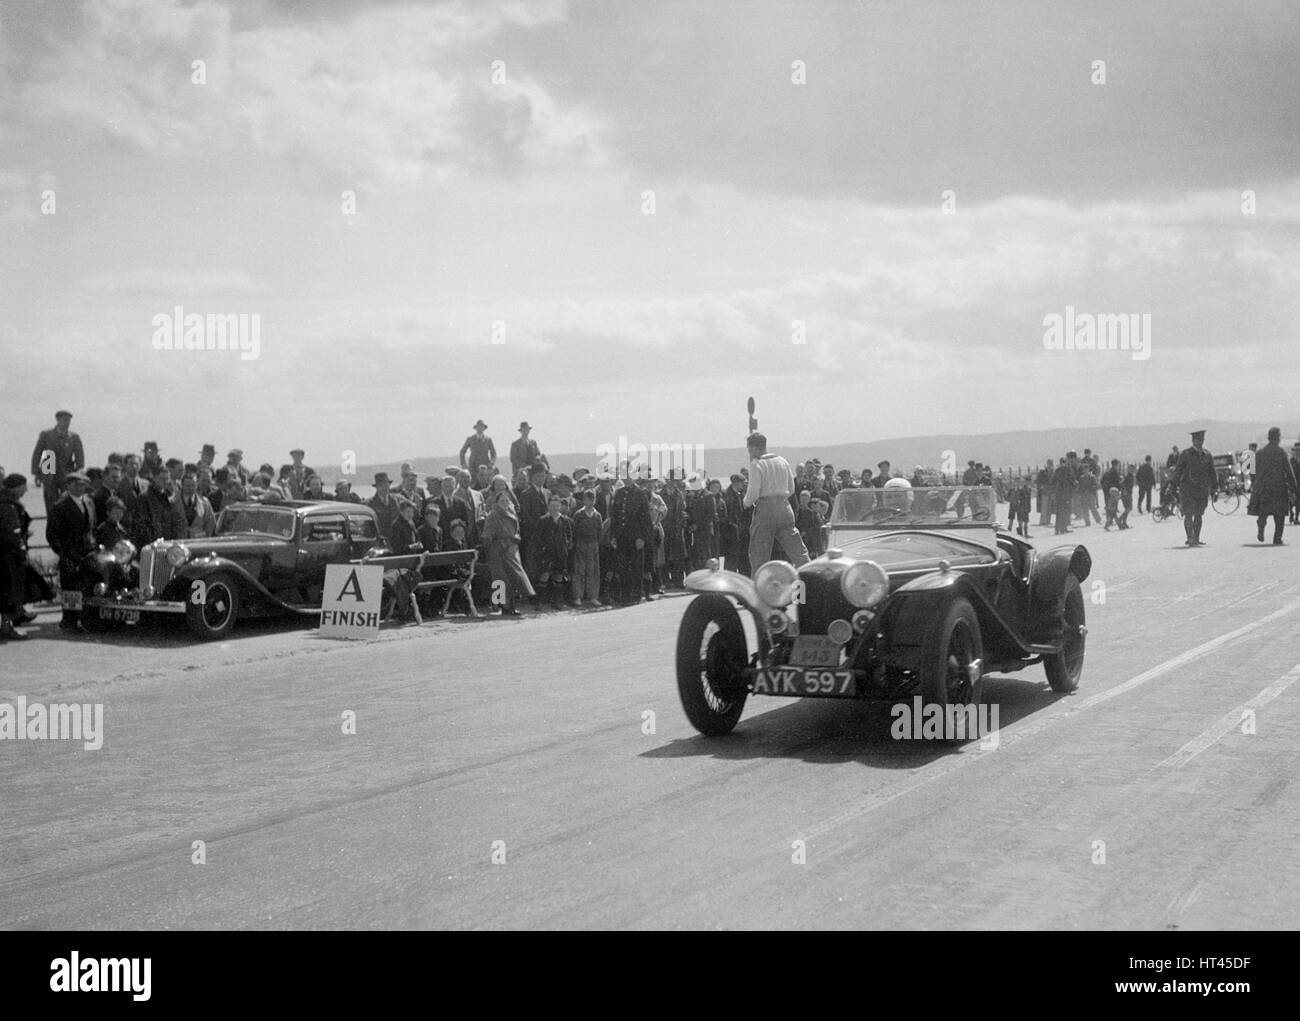 Riley Imp 2-seater of Dorothy Champney competing in the RSAC Scottish Rally, 1934. Artist: Bill Brunell. - Stock Image